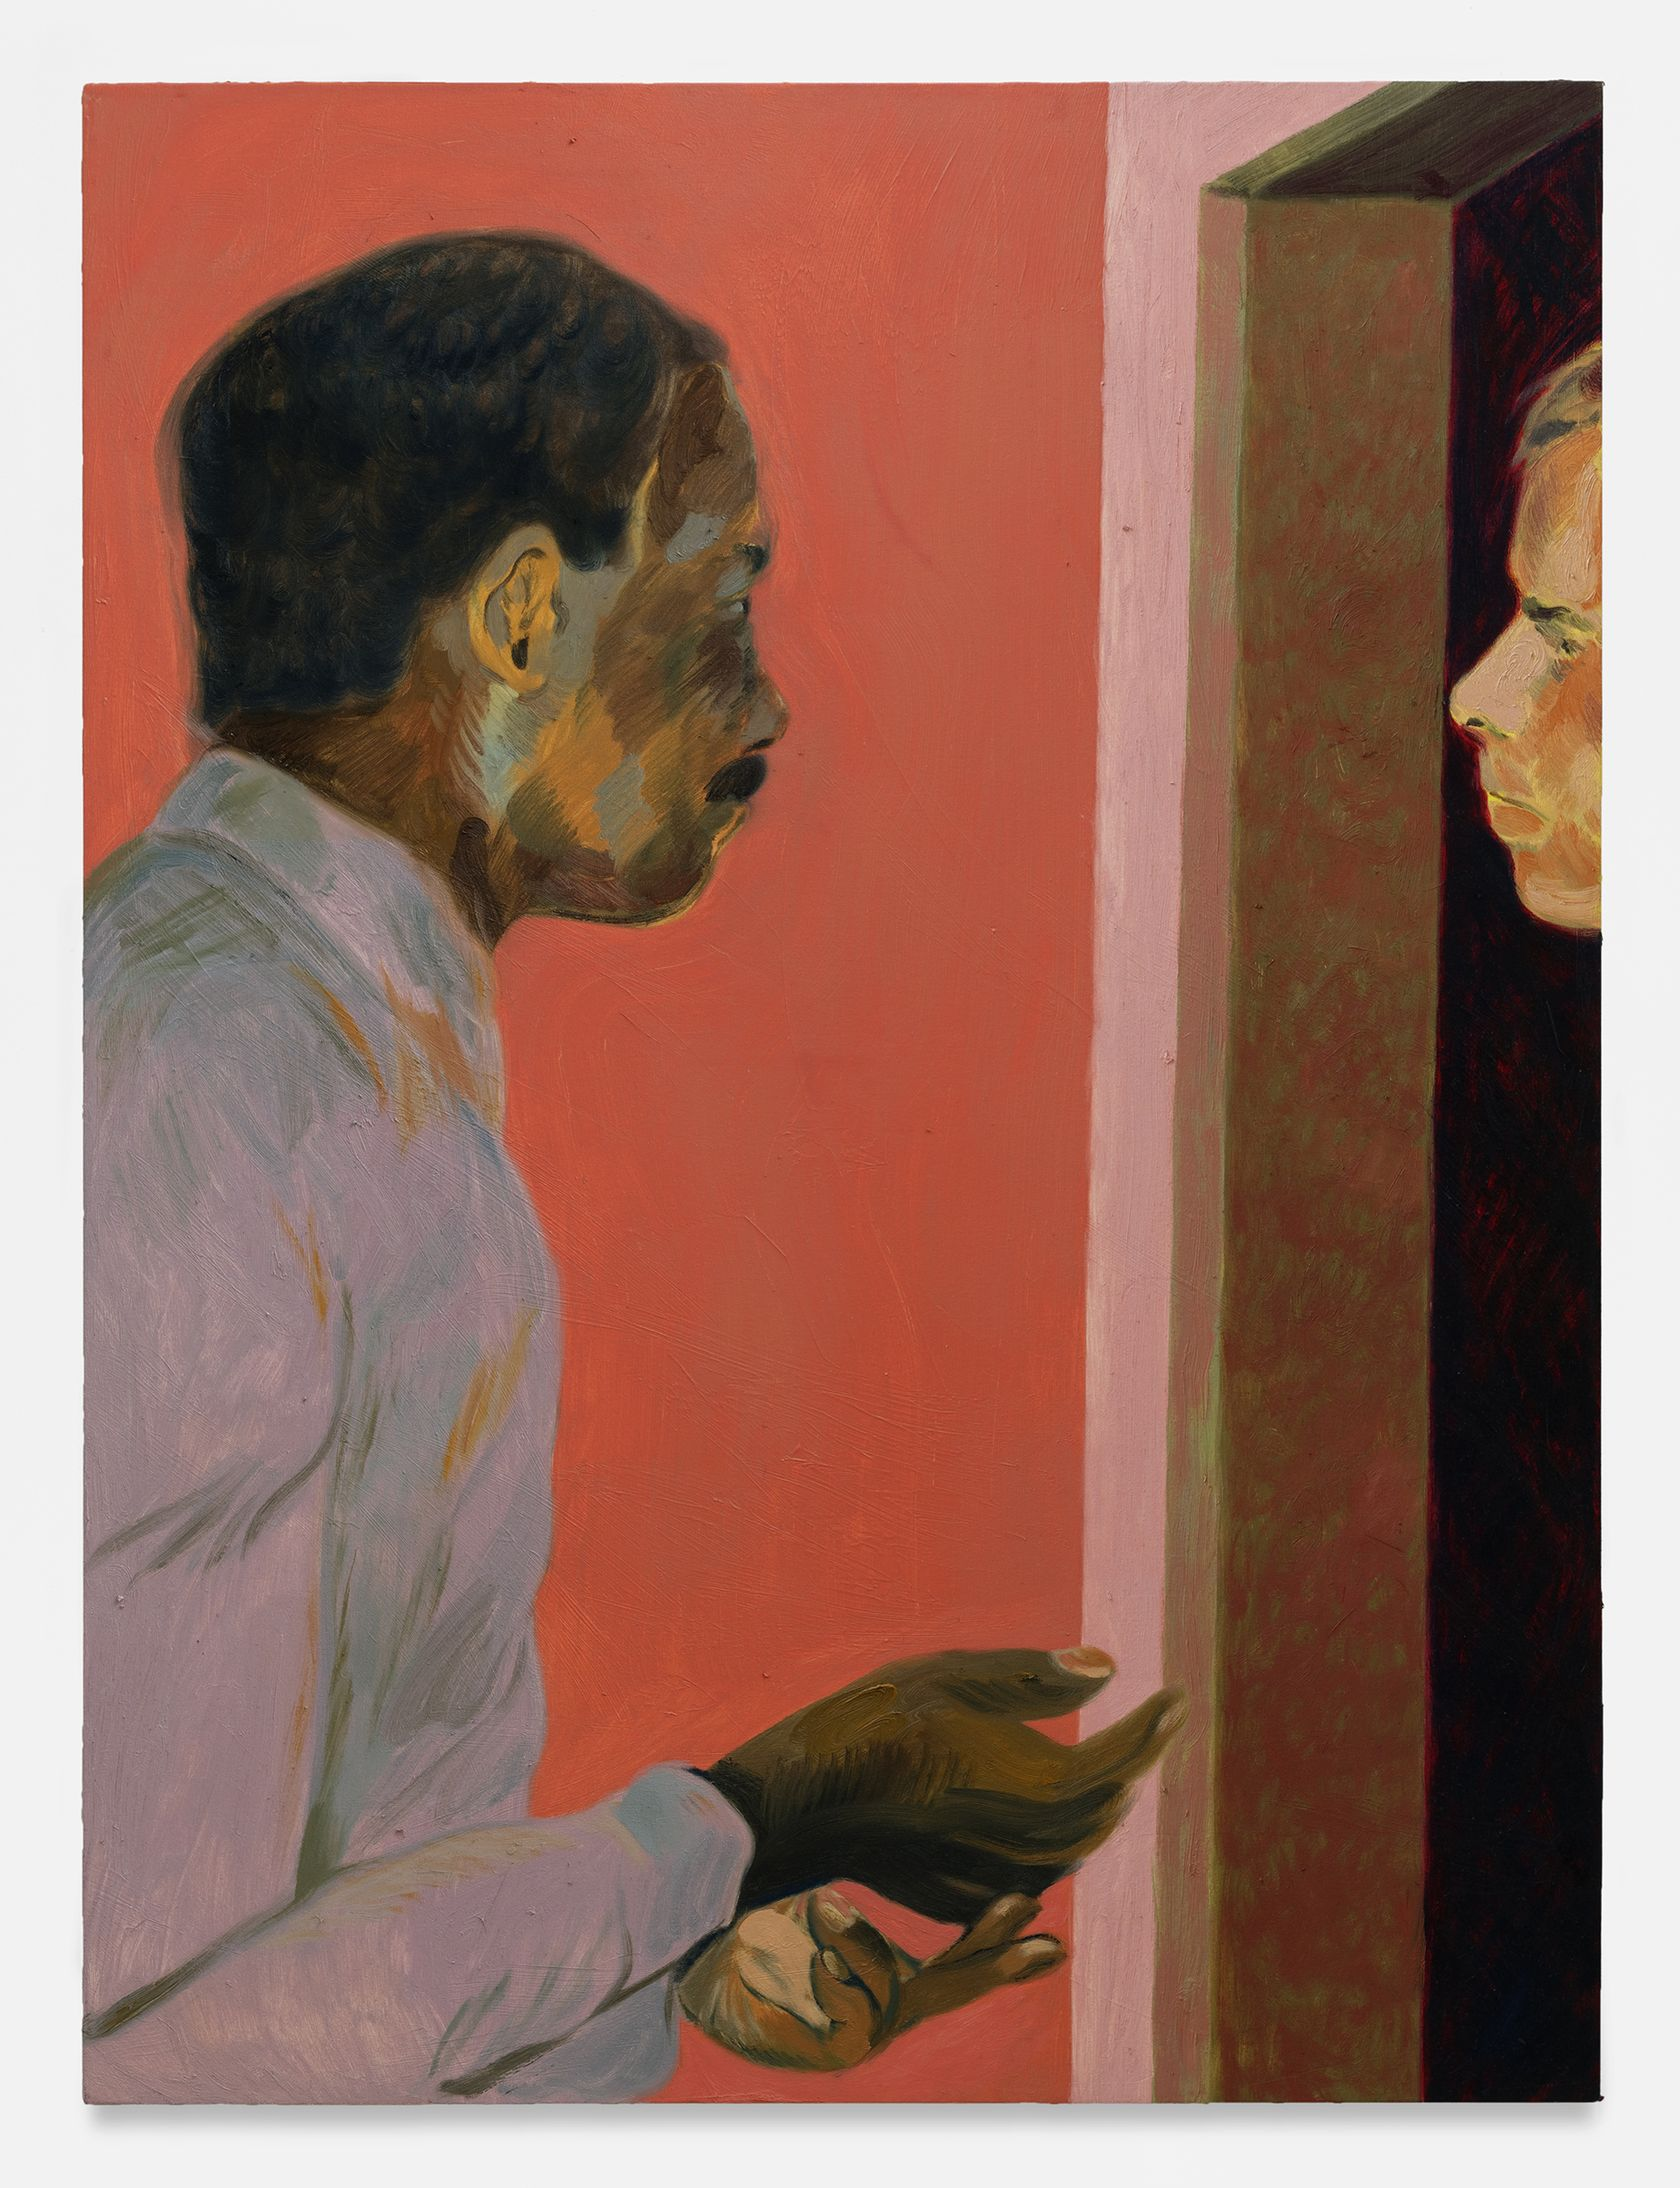 Anthony Cudahy, Conversation i, 2021 Huile sur toile122 × 91 cm / 48 × 36 in.